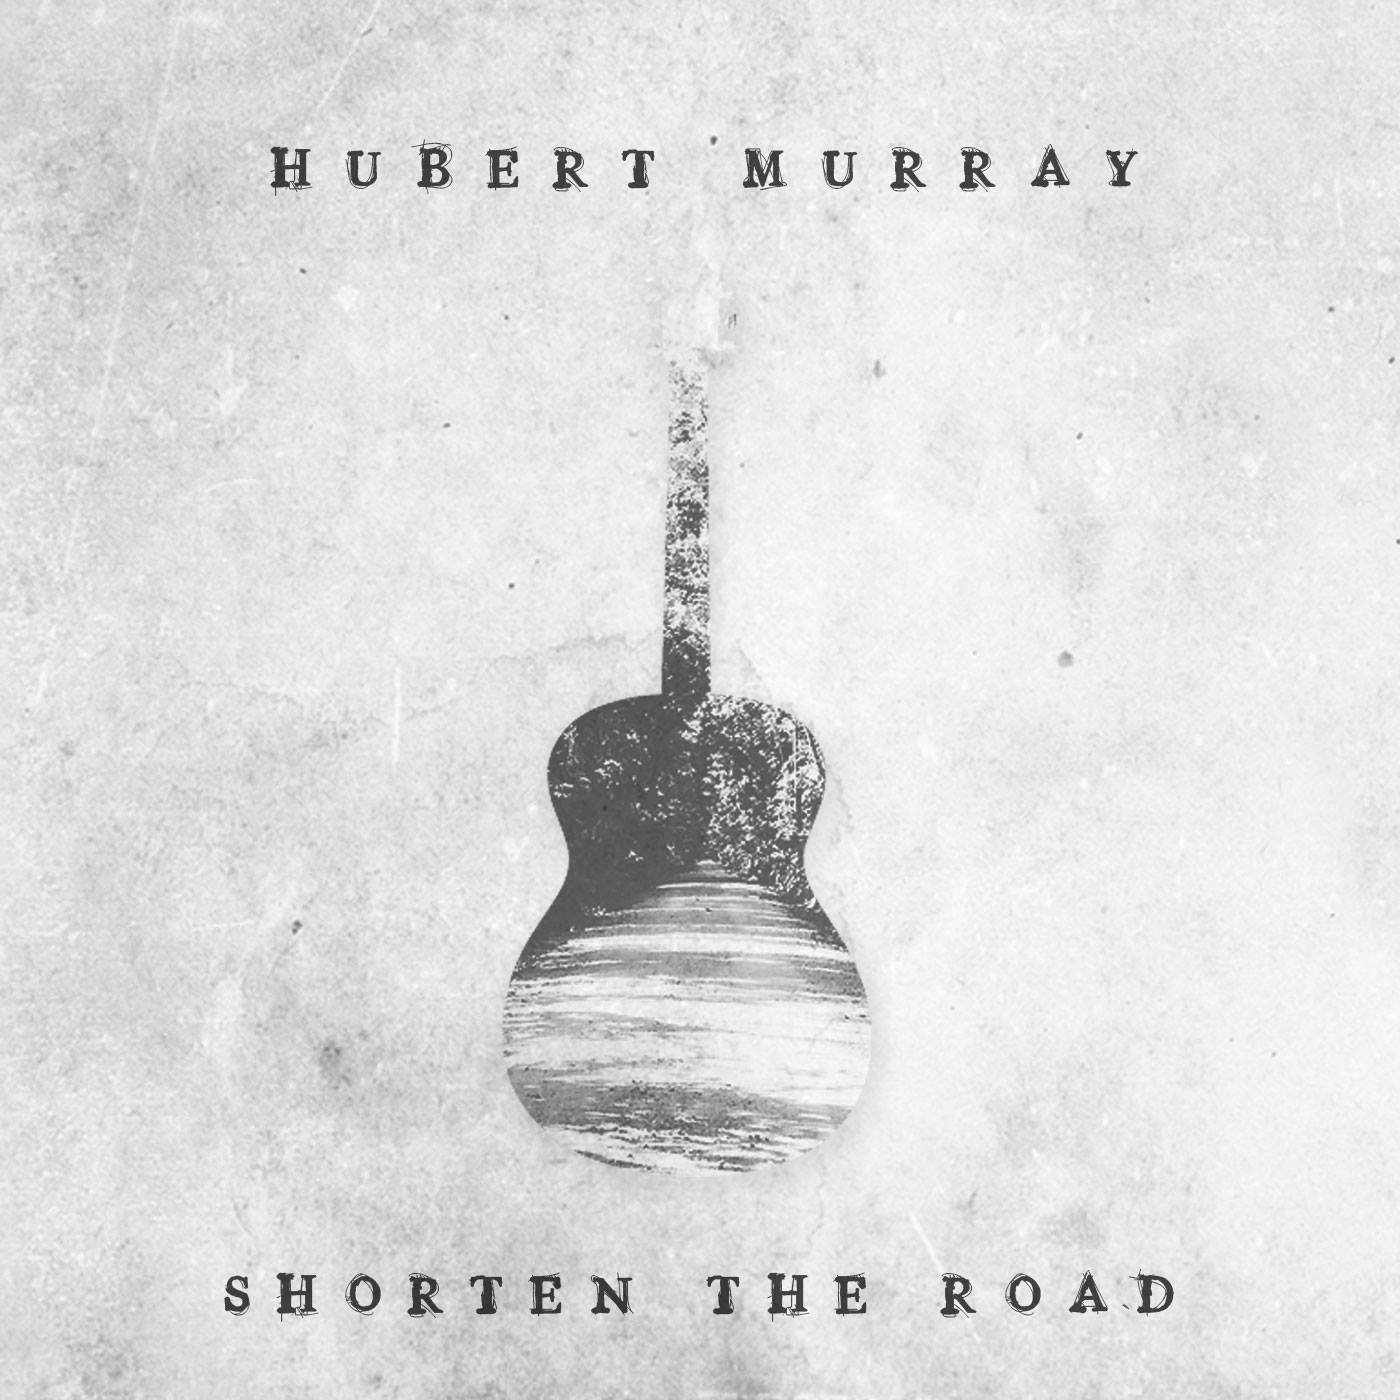 Artist:  Hubert Murray   Title:  Shorten the Road   Credit:  Recording, Mixing, Mastering   Year:  2016